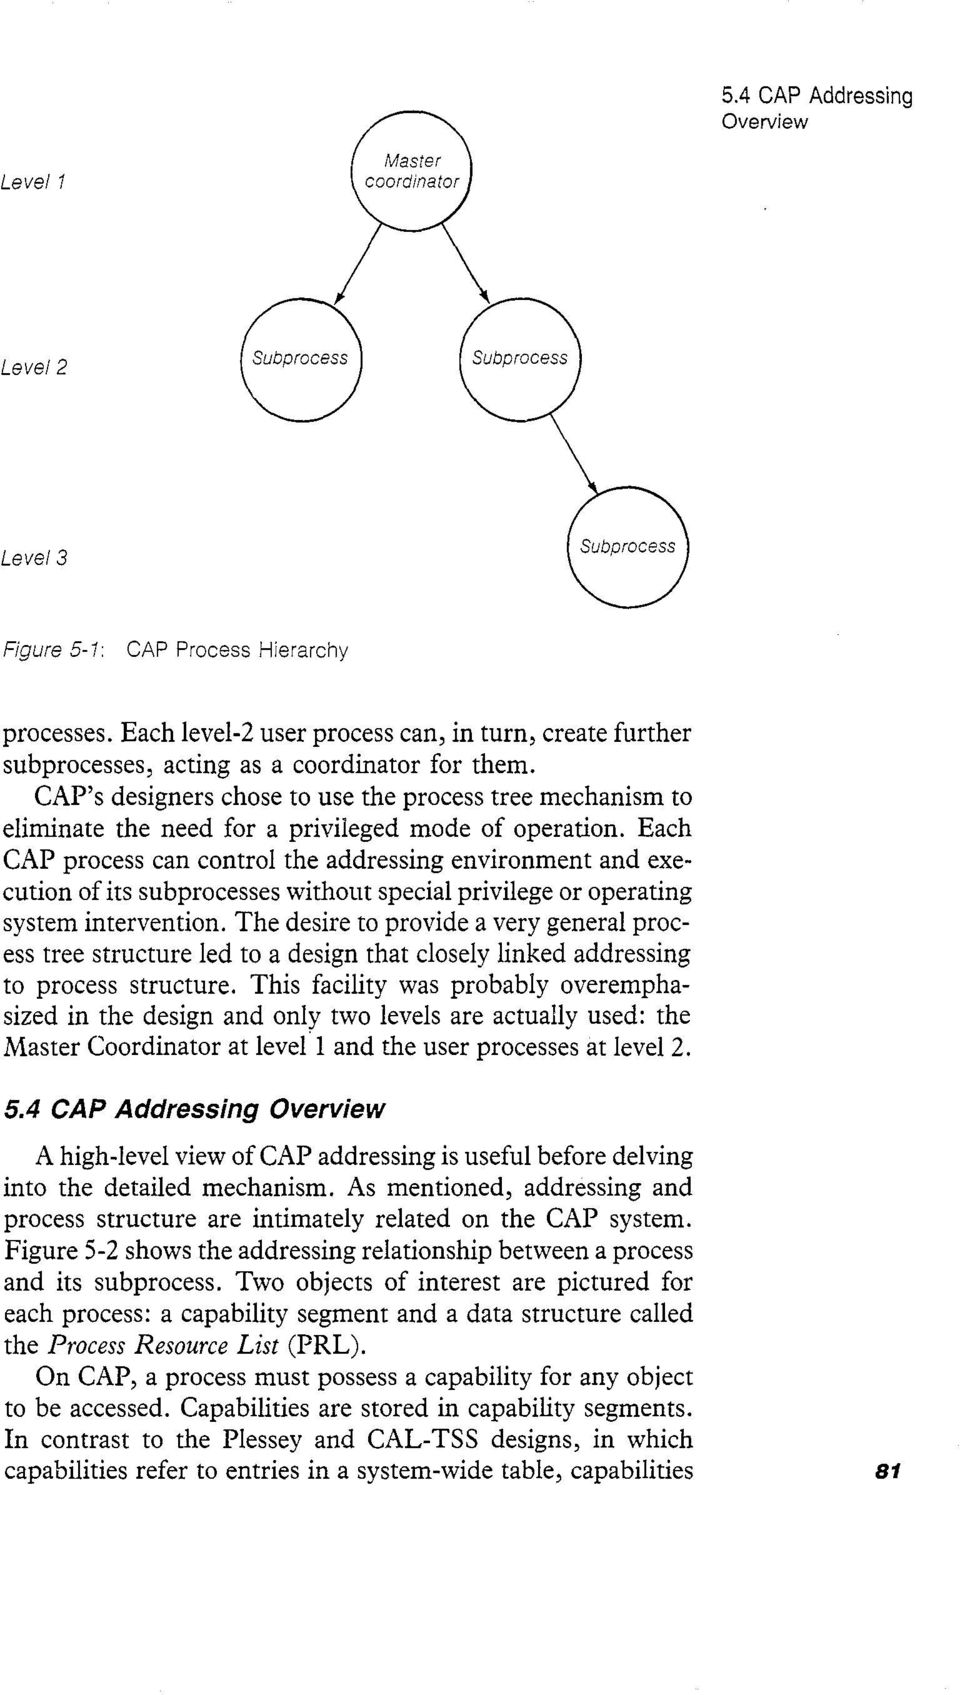 CAP s designers chose to use the process tree mechanism to eliminate the need for a privileged mode of operation.